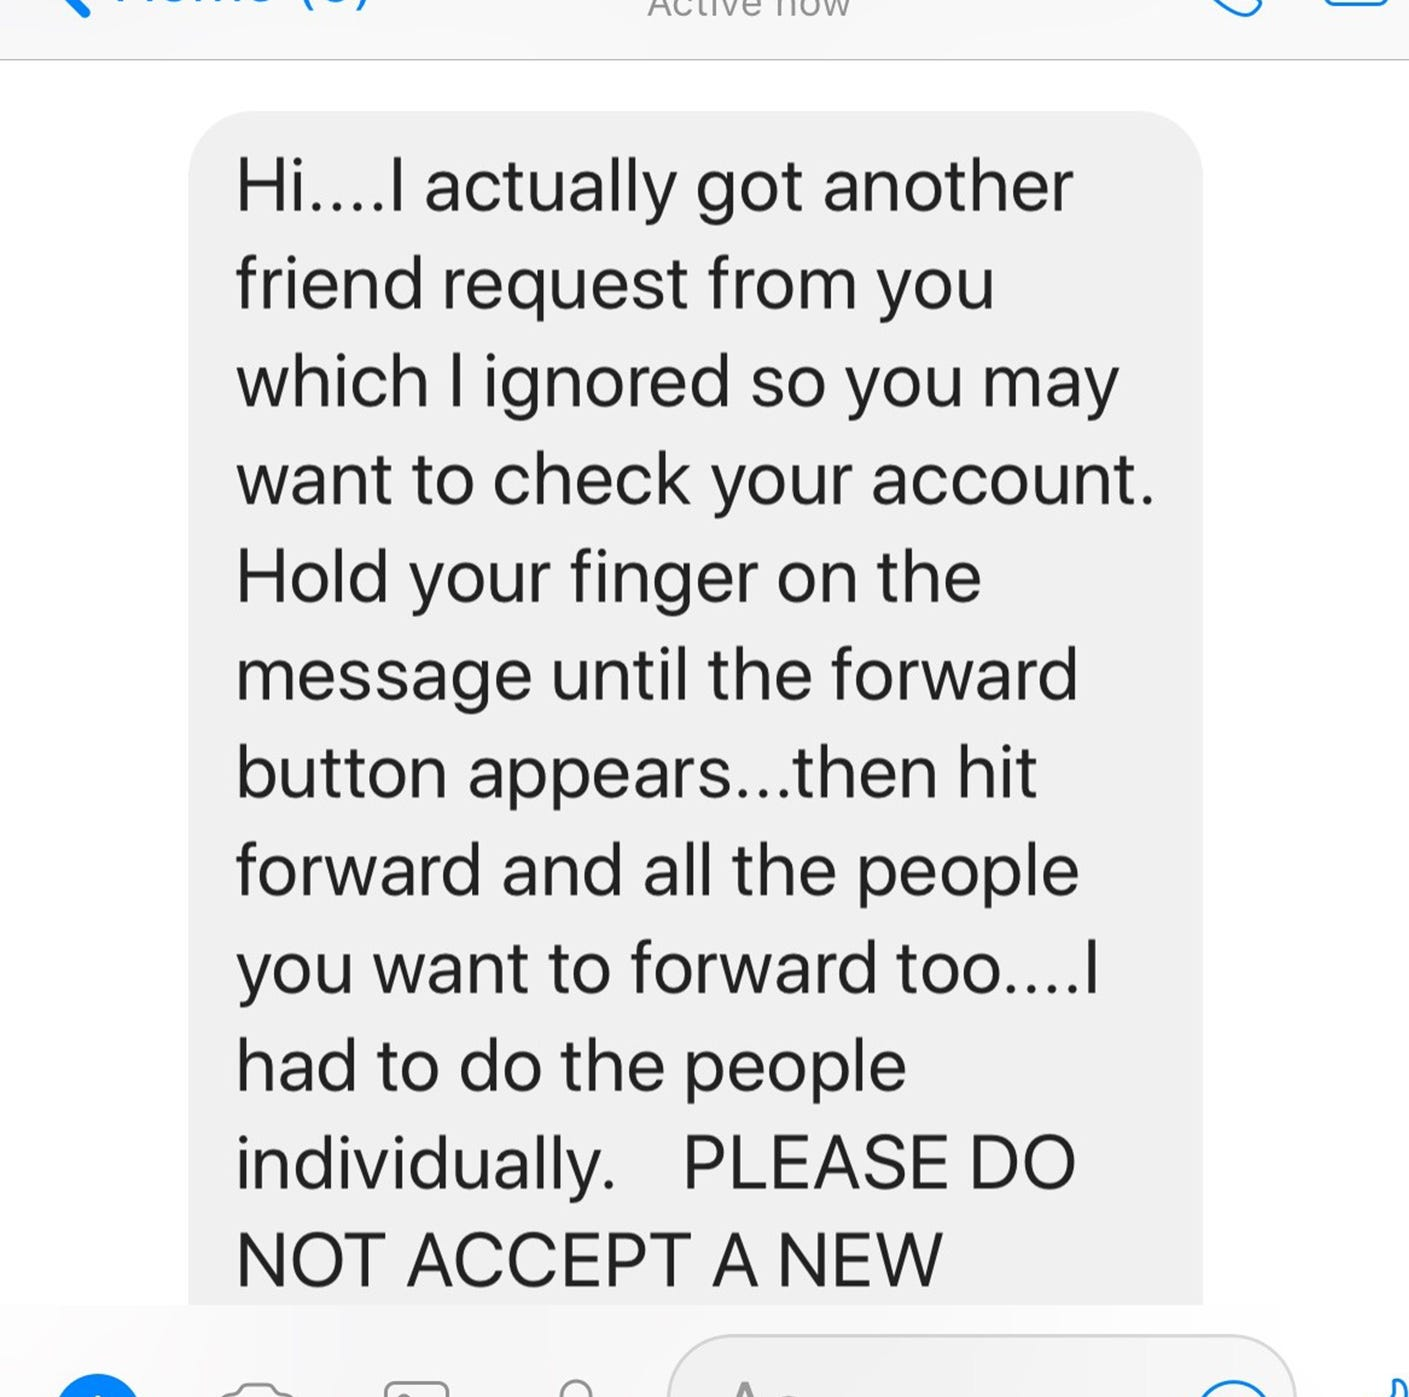 This Facebook hoax is making users believe their account was hacked